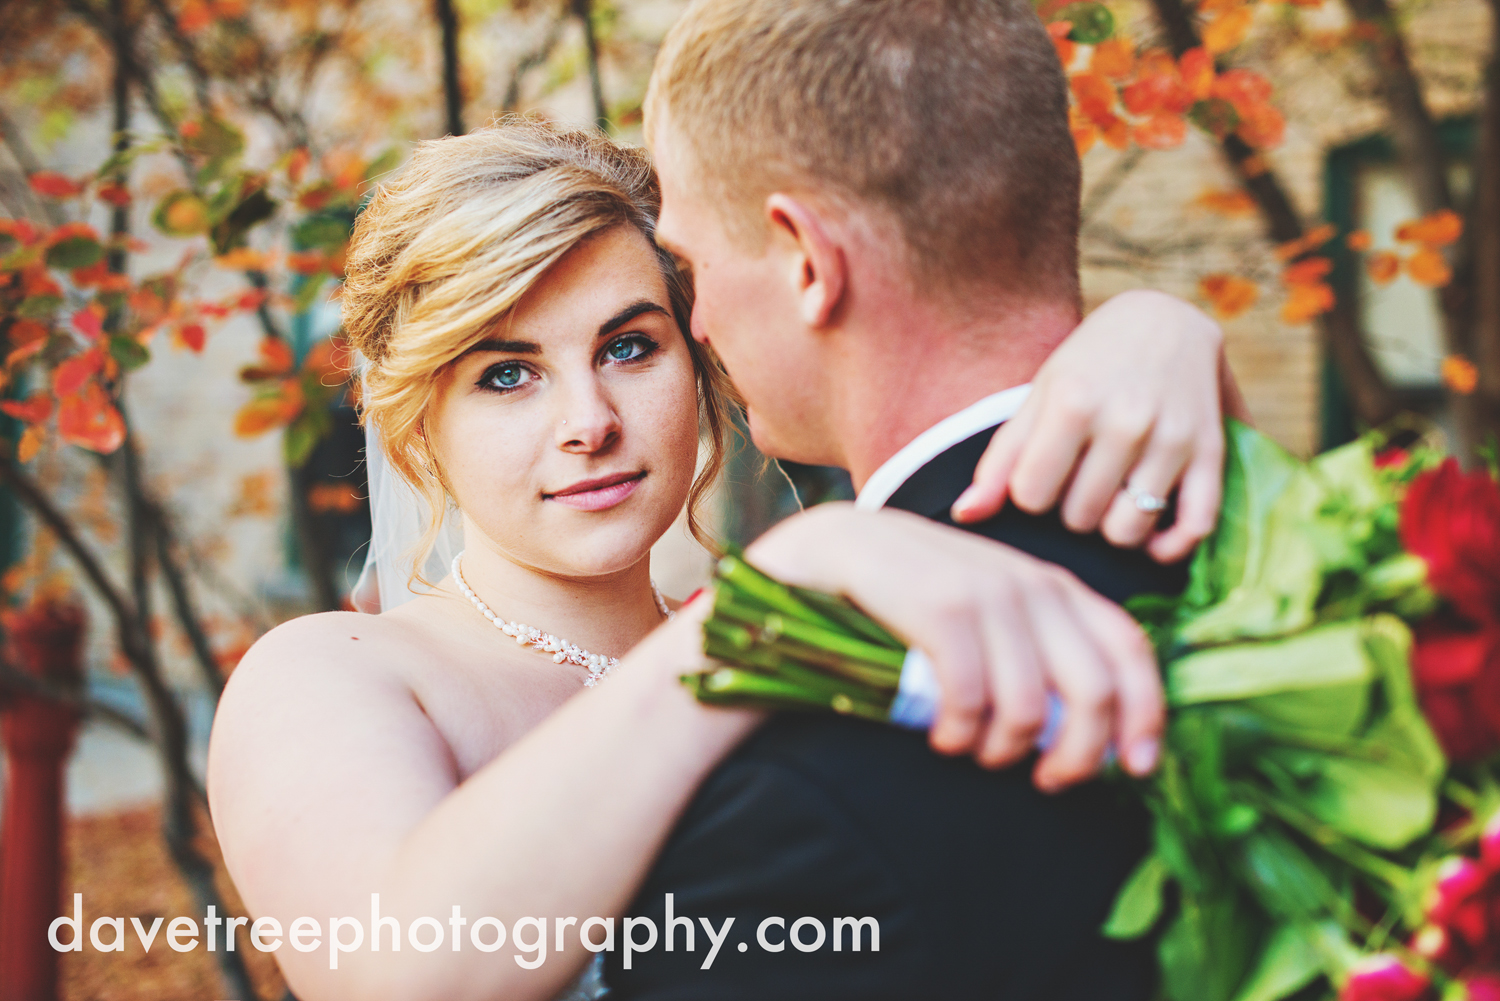 holland_wedding_photographer_12.jpg